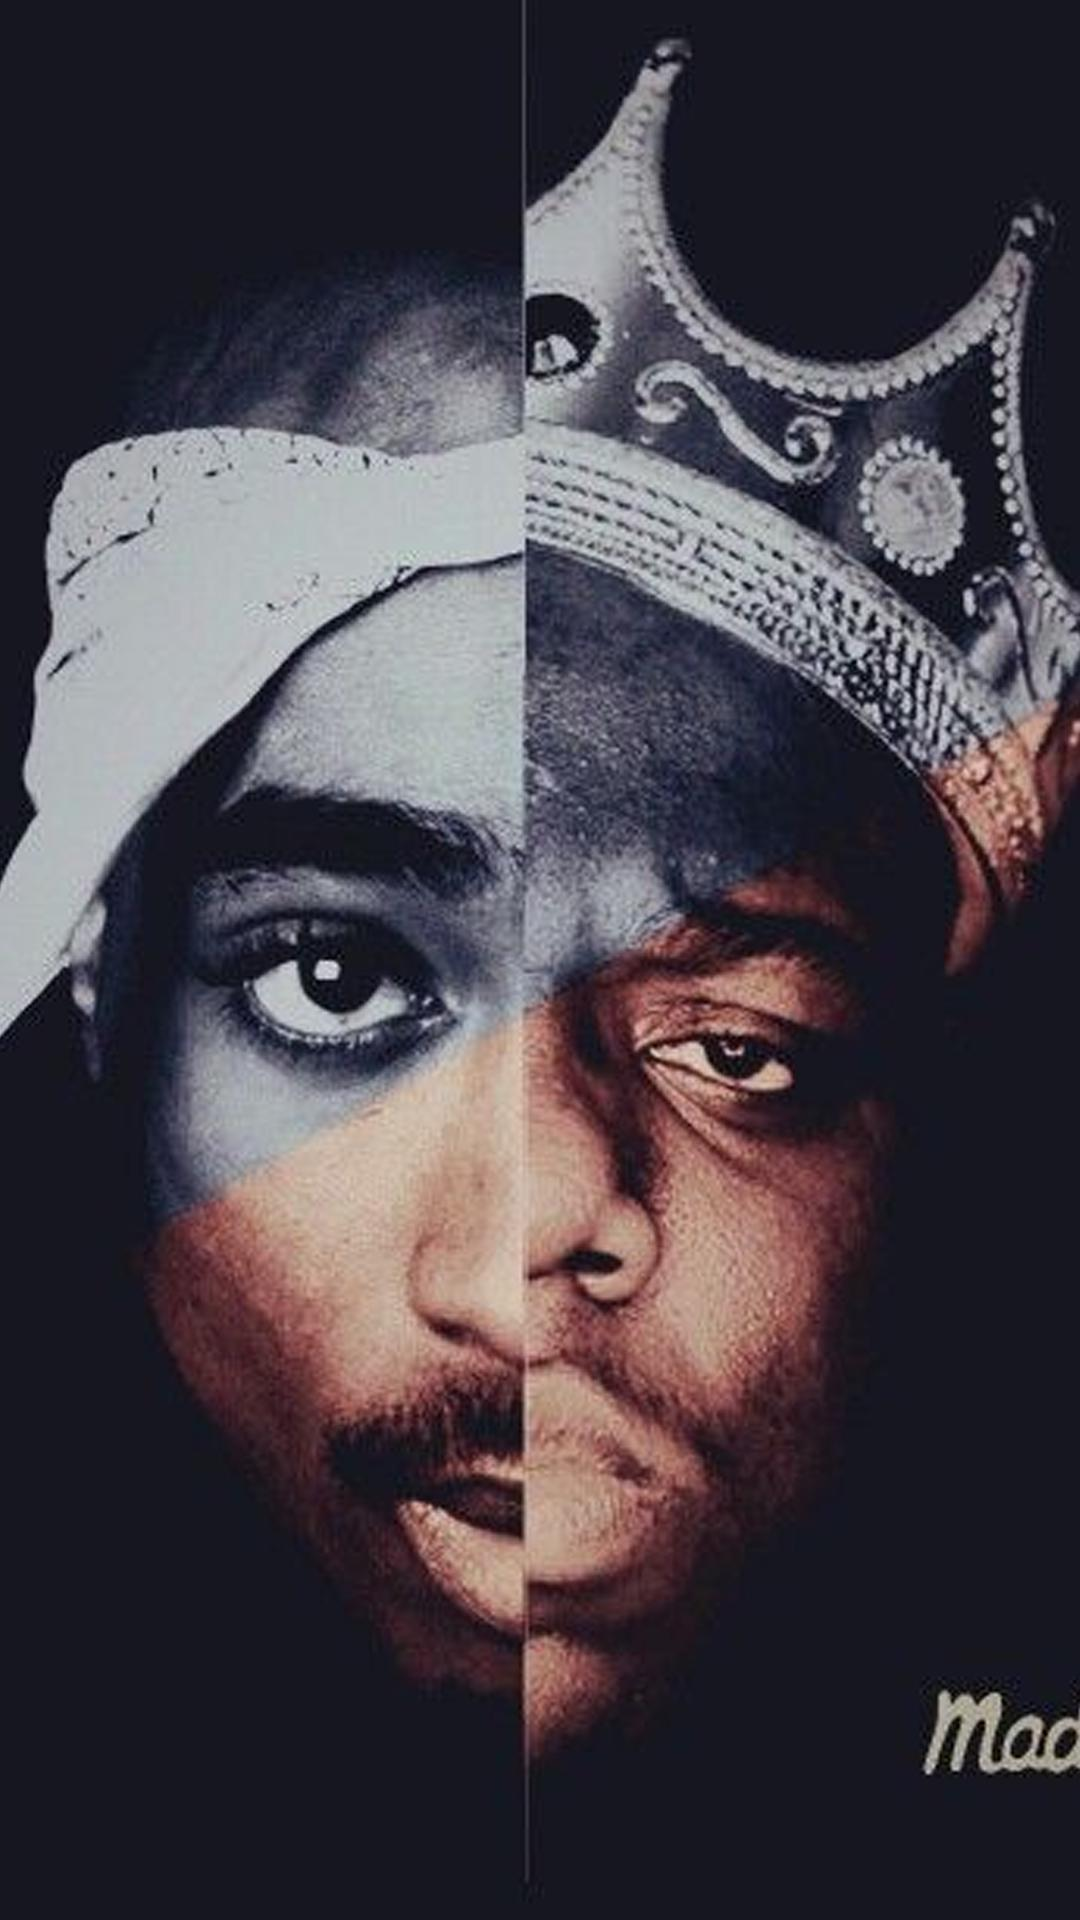 Tupac And Biggie Wallpaper And Lock Screen Hd For Android